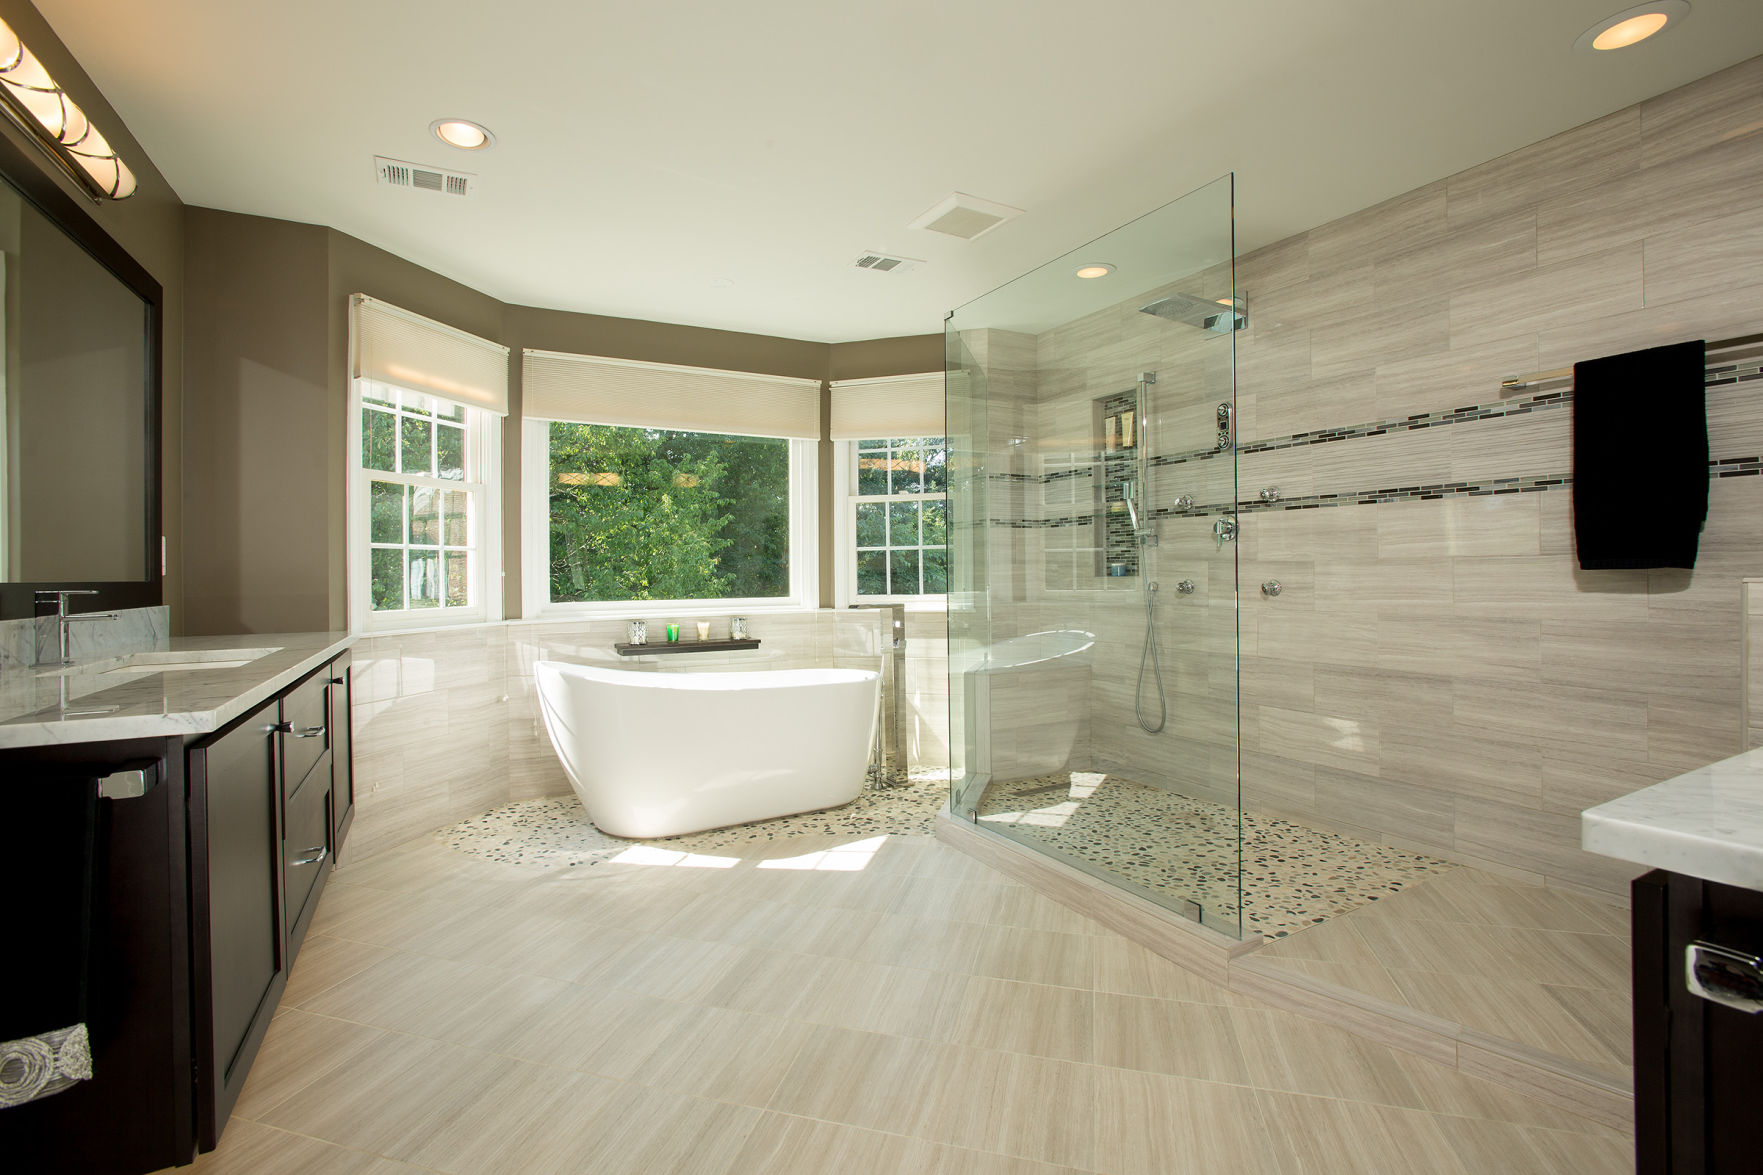 Color Natural Materials Multi Functionality Top List Of Demands In Luxury Bathrooms Articles Fairfaxtimes Com